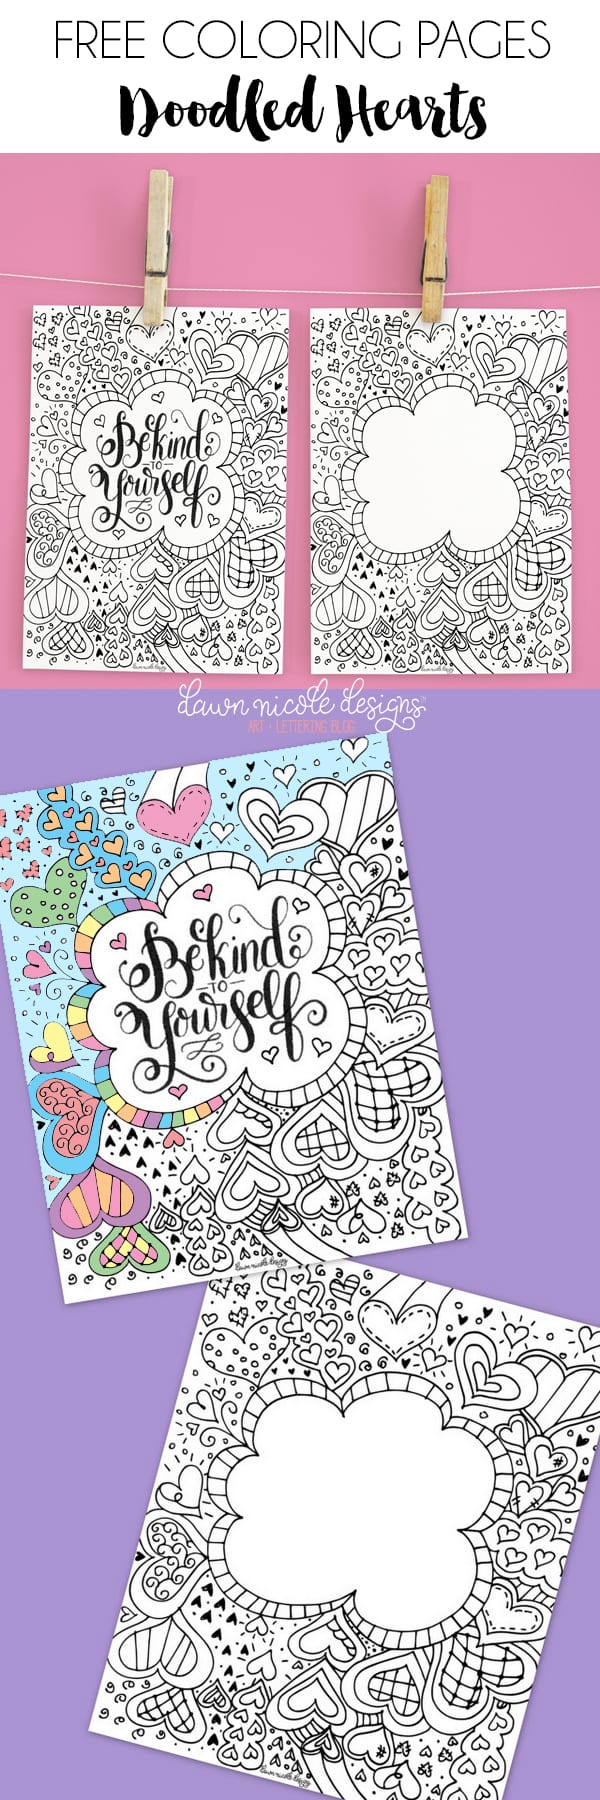 doodled hearts free coloring pages dawn nicole designs